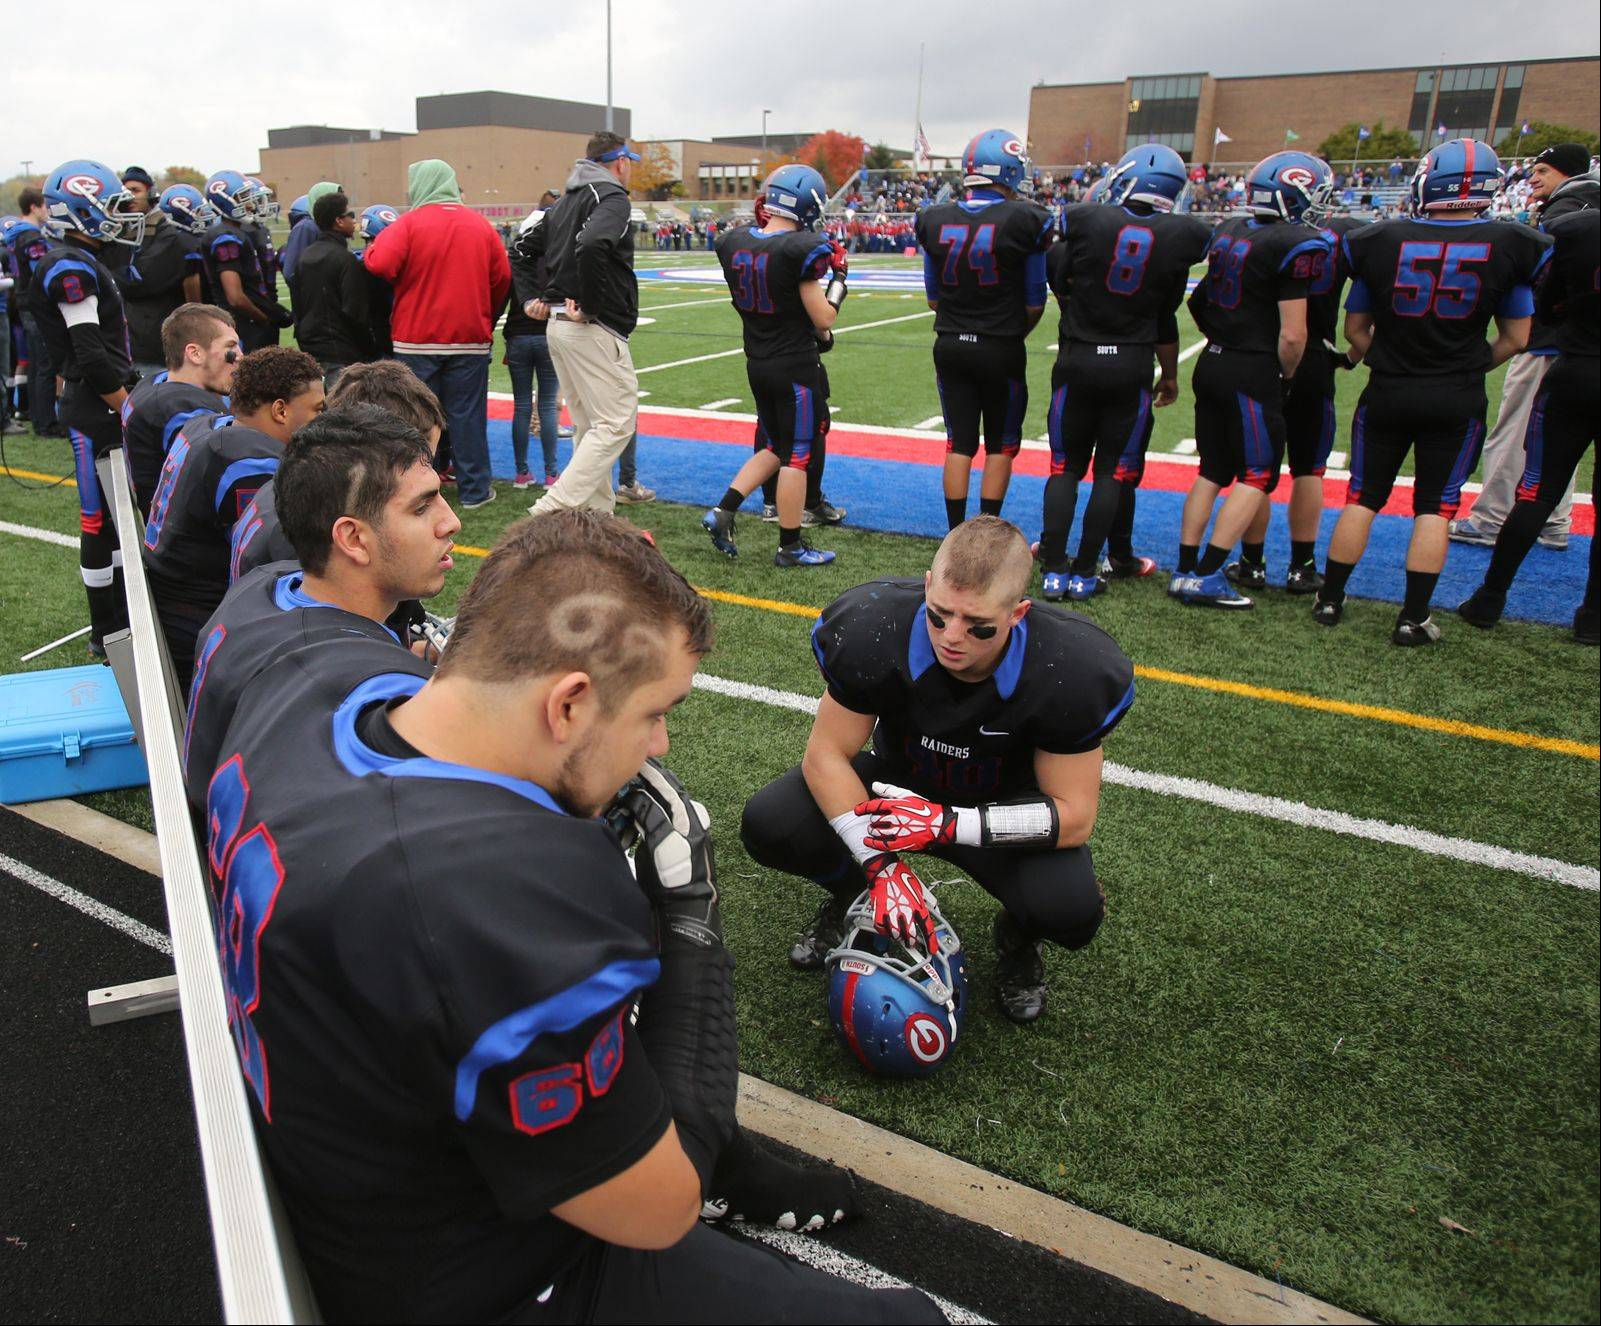 Playoffs -Round One- Photos from the St. Francis at Glenbard South football game on Saturday, Nov. 2.